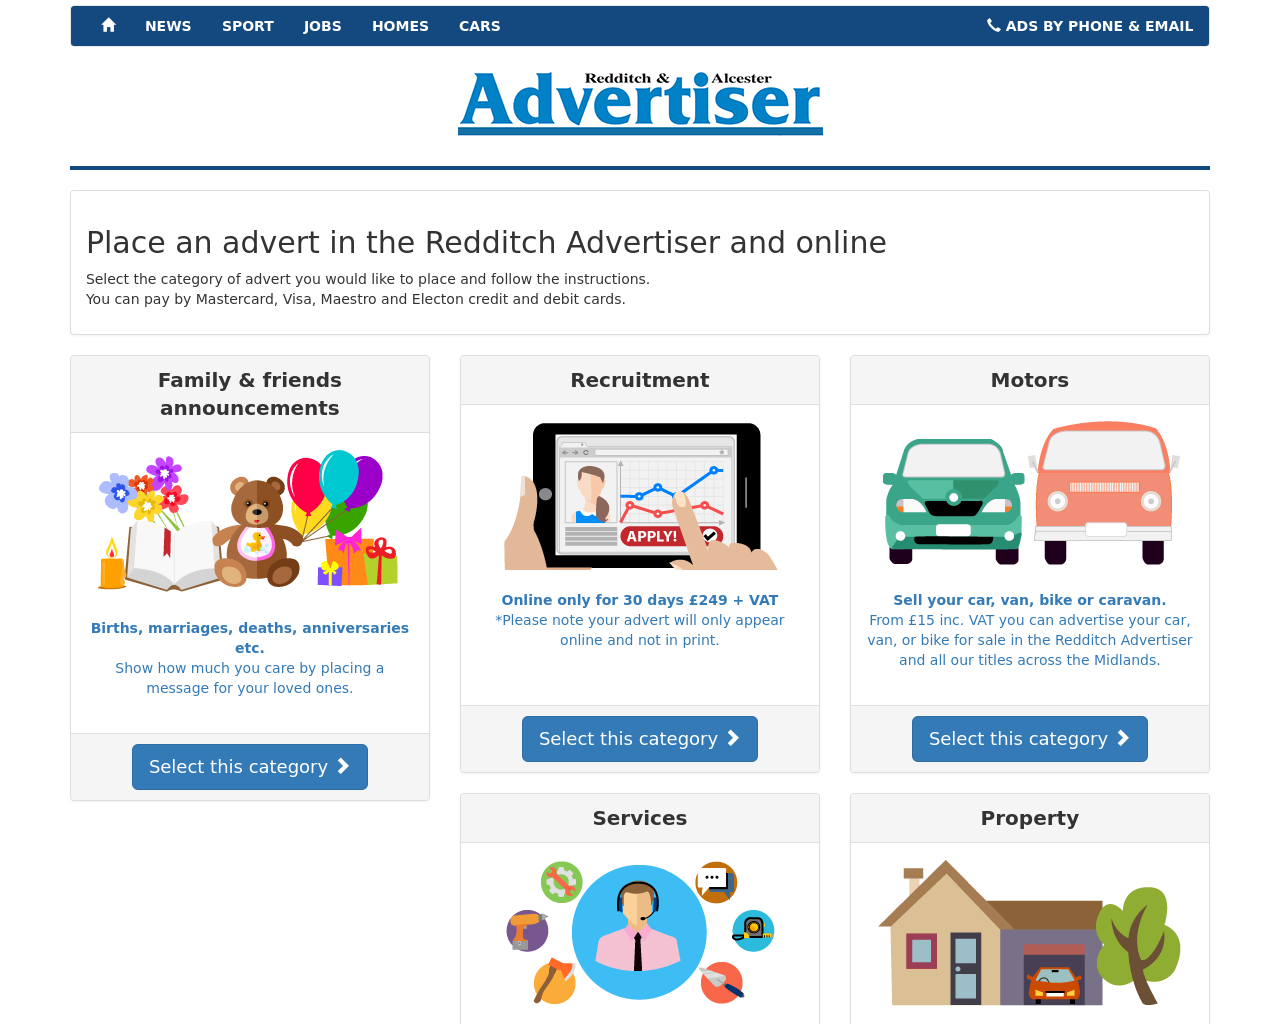 Redditch-&-Alcester-Advertising-Reviews-Pricing